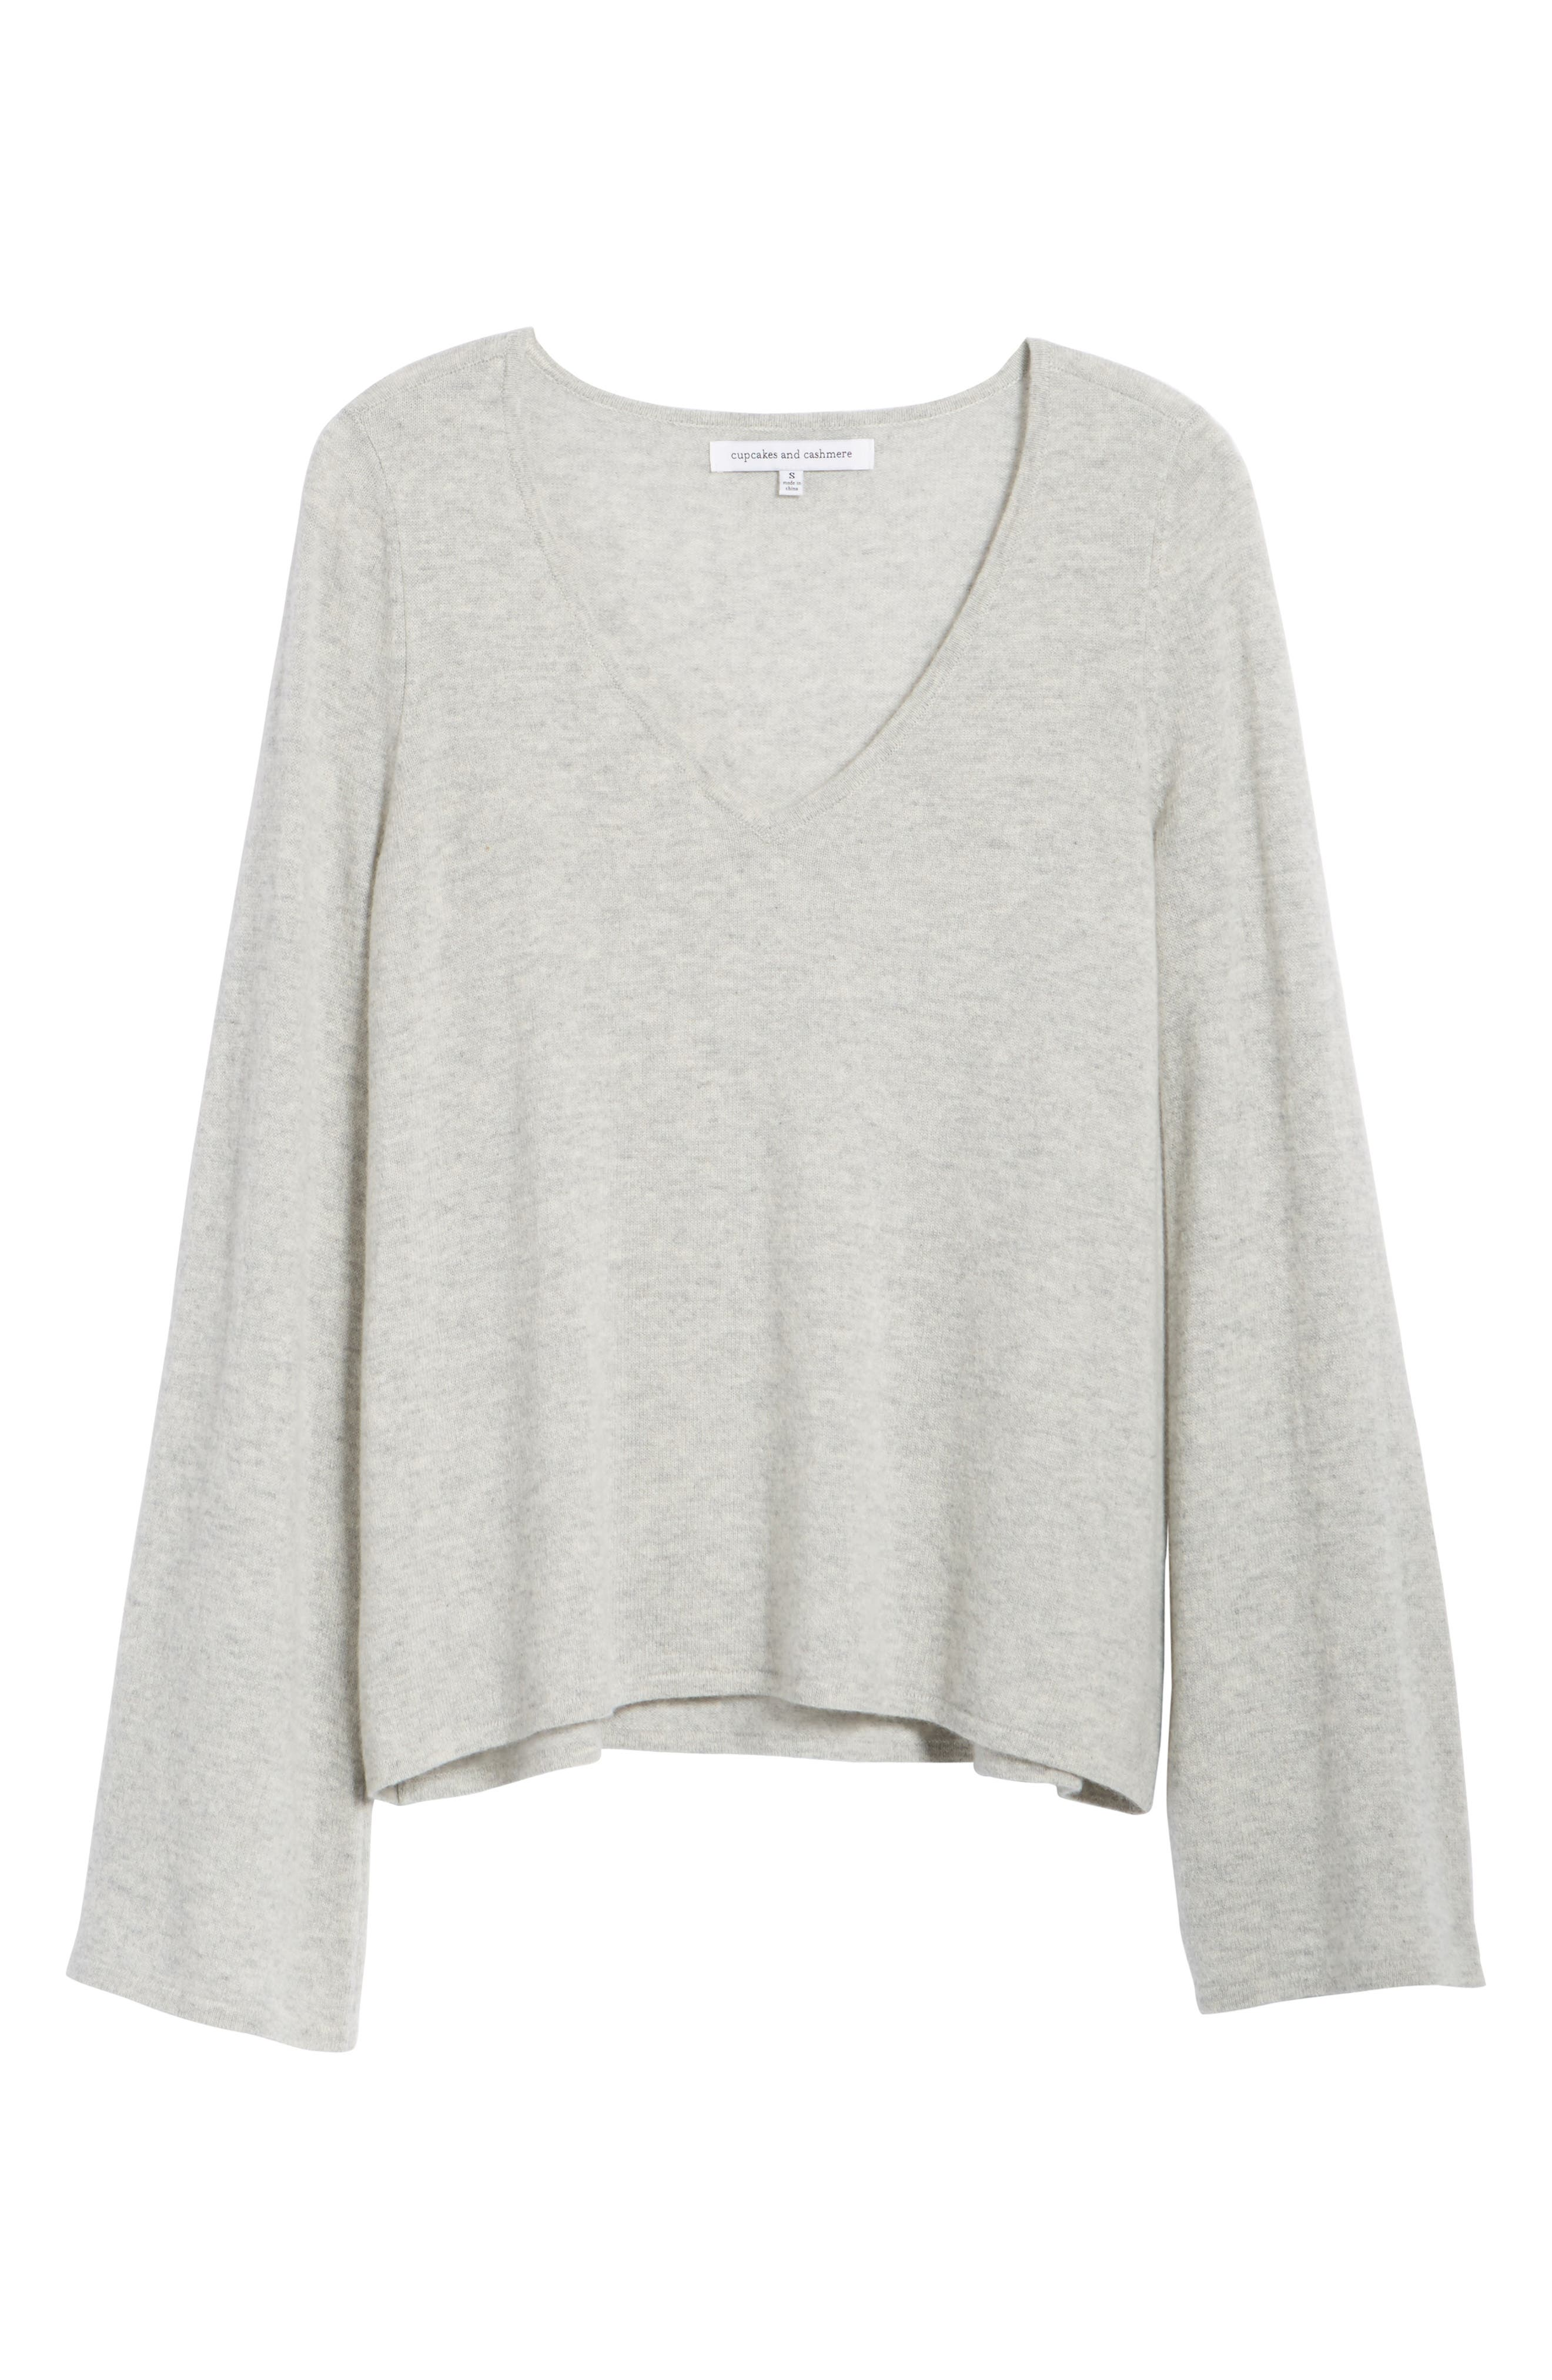 Marylee Cashmere Top,                             Alternate thumbnail 6, color,